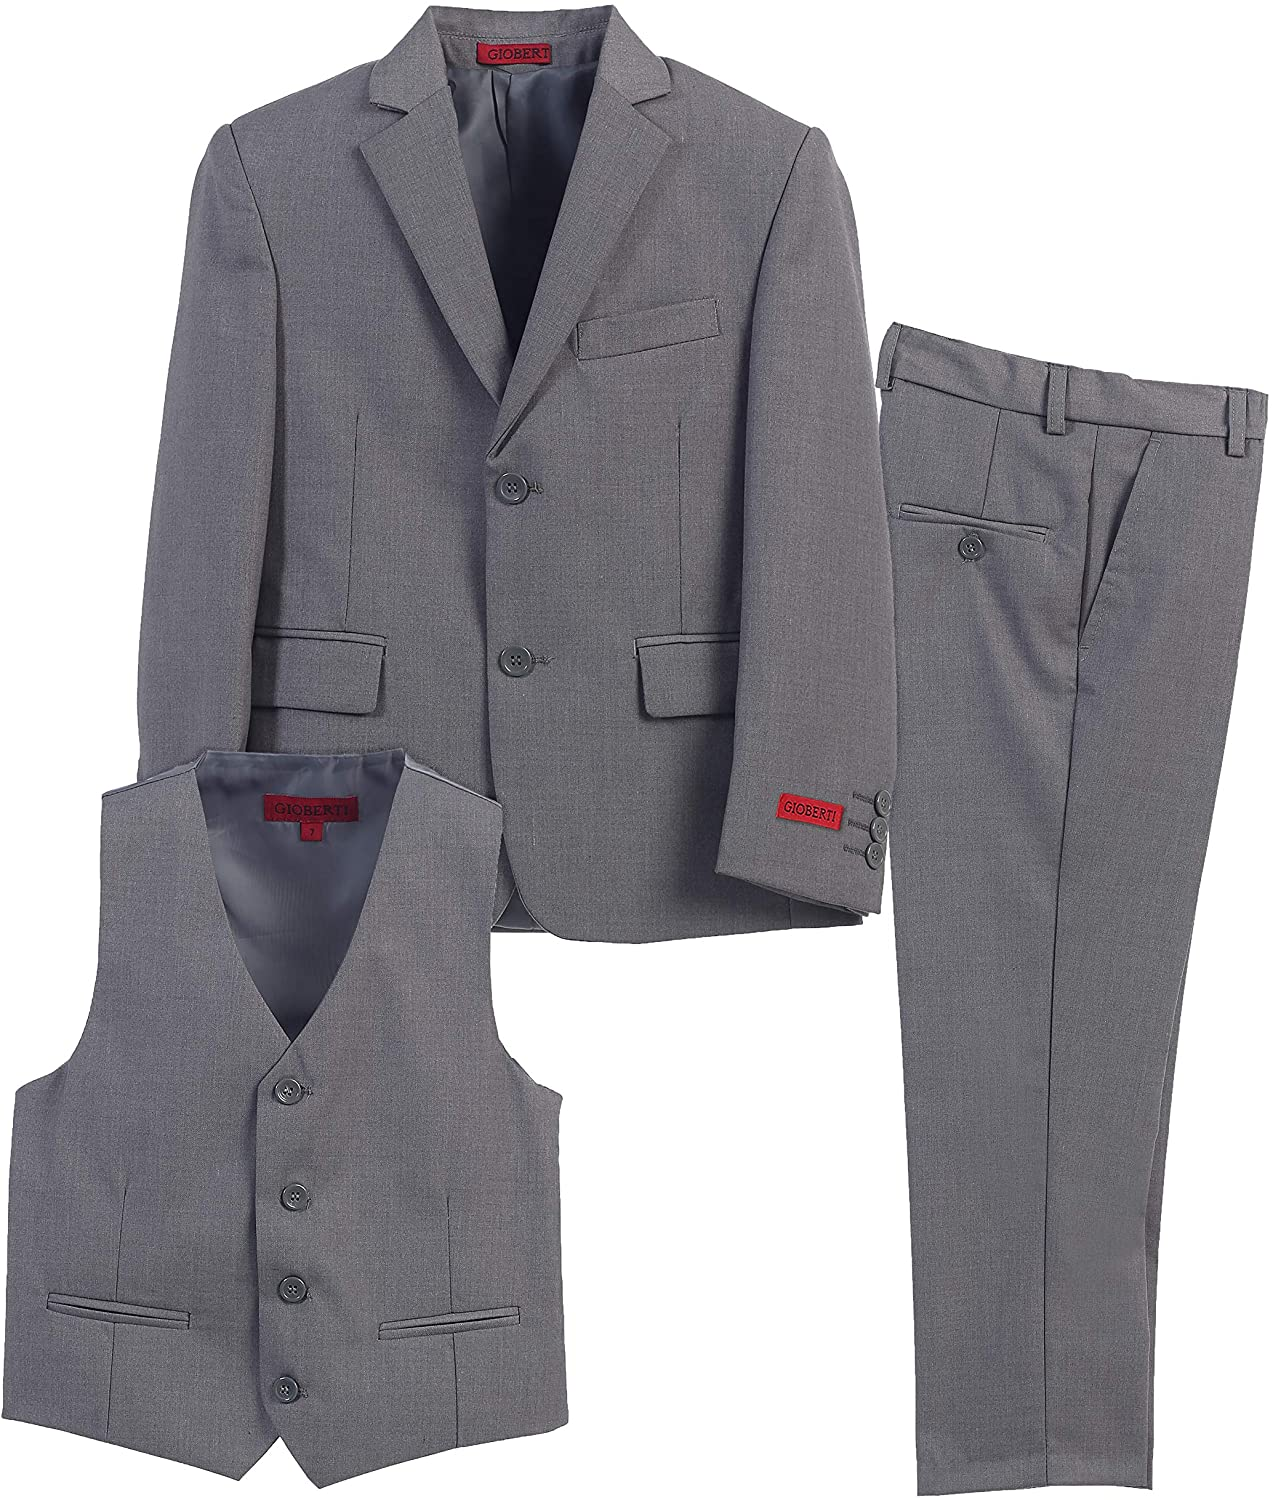 Gioberti Max 70% OFF Boy's Formal Suit Special Campaign Set